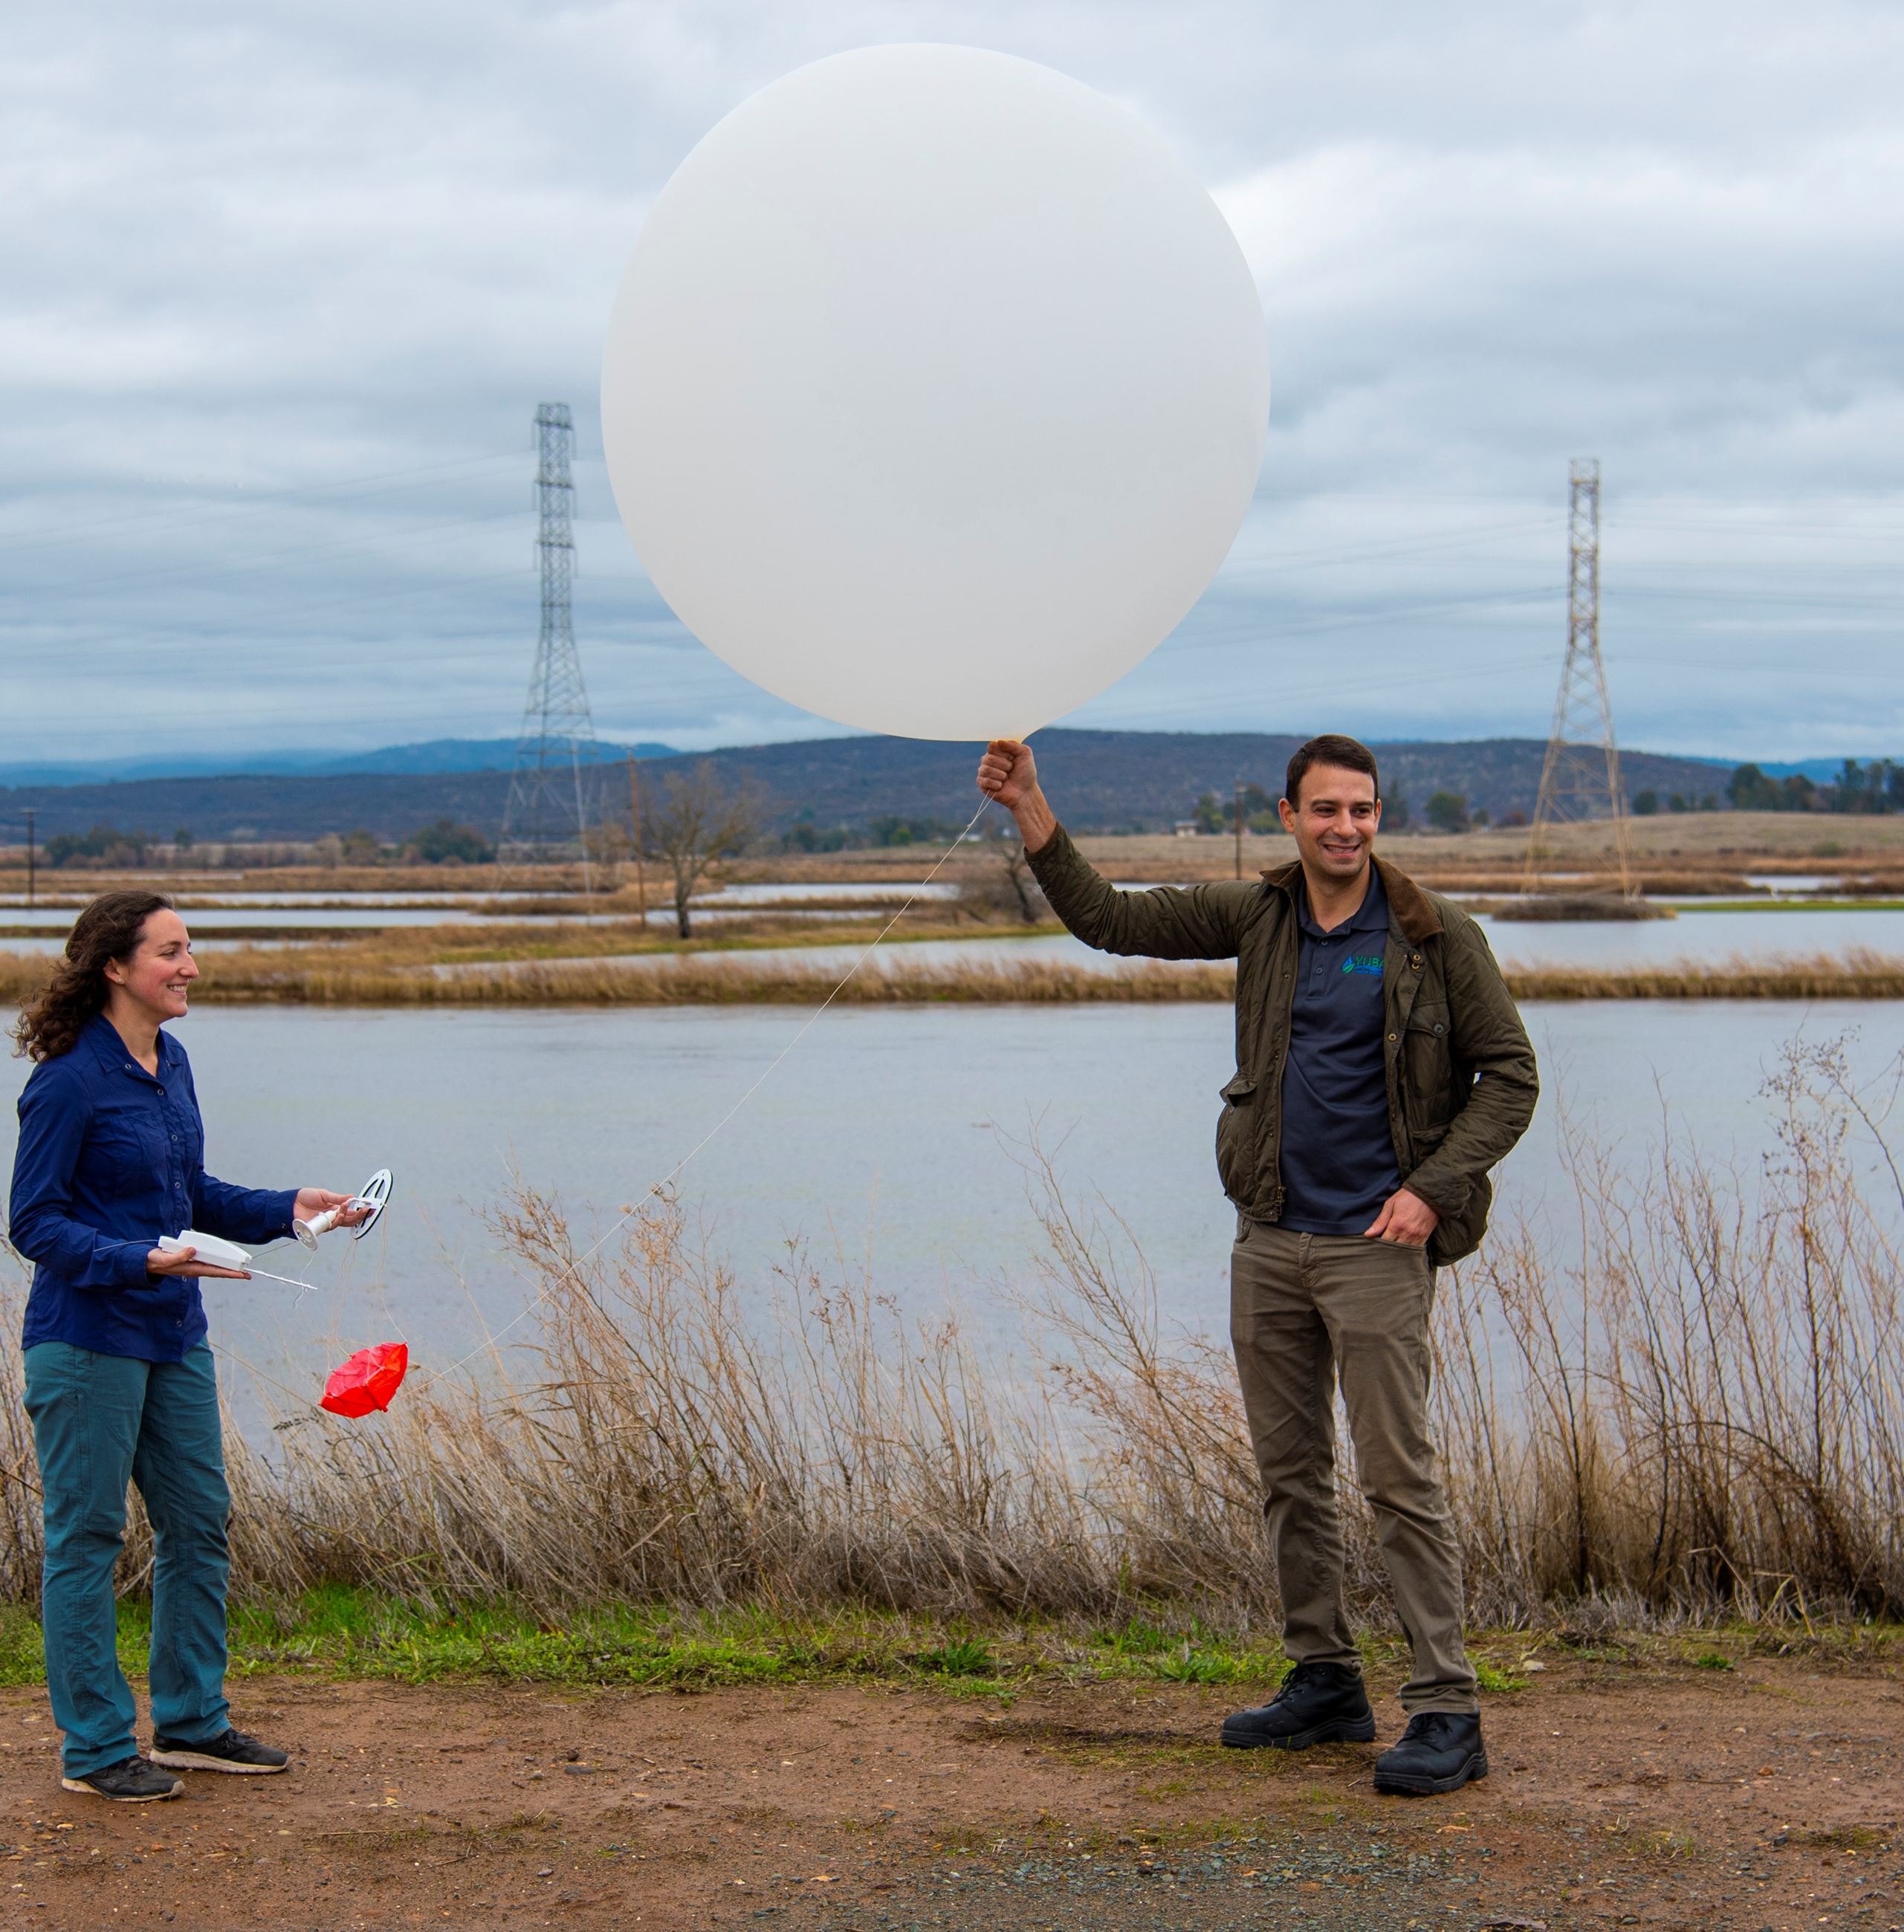 A man holds a weather balloon as he stands next to a woman holding a sensor.